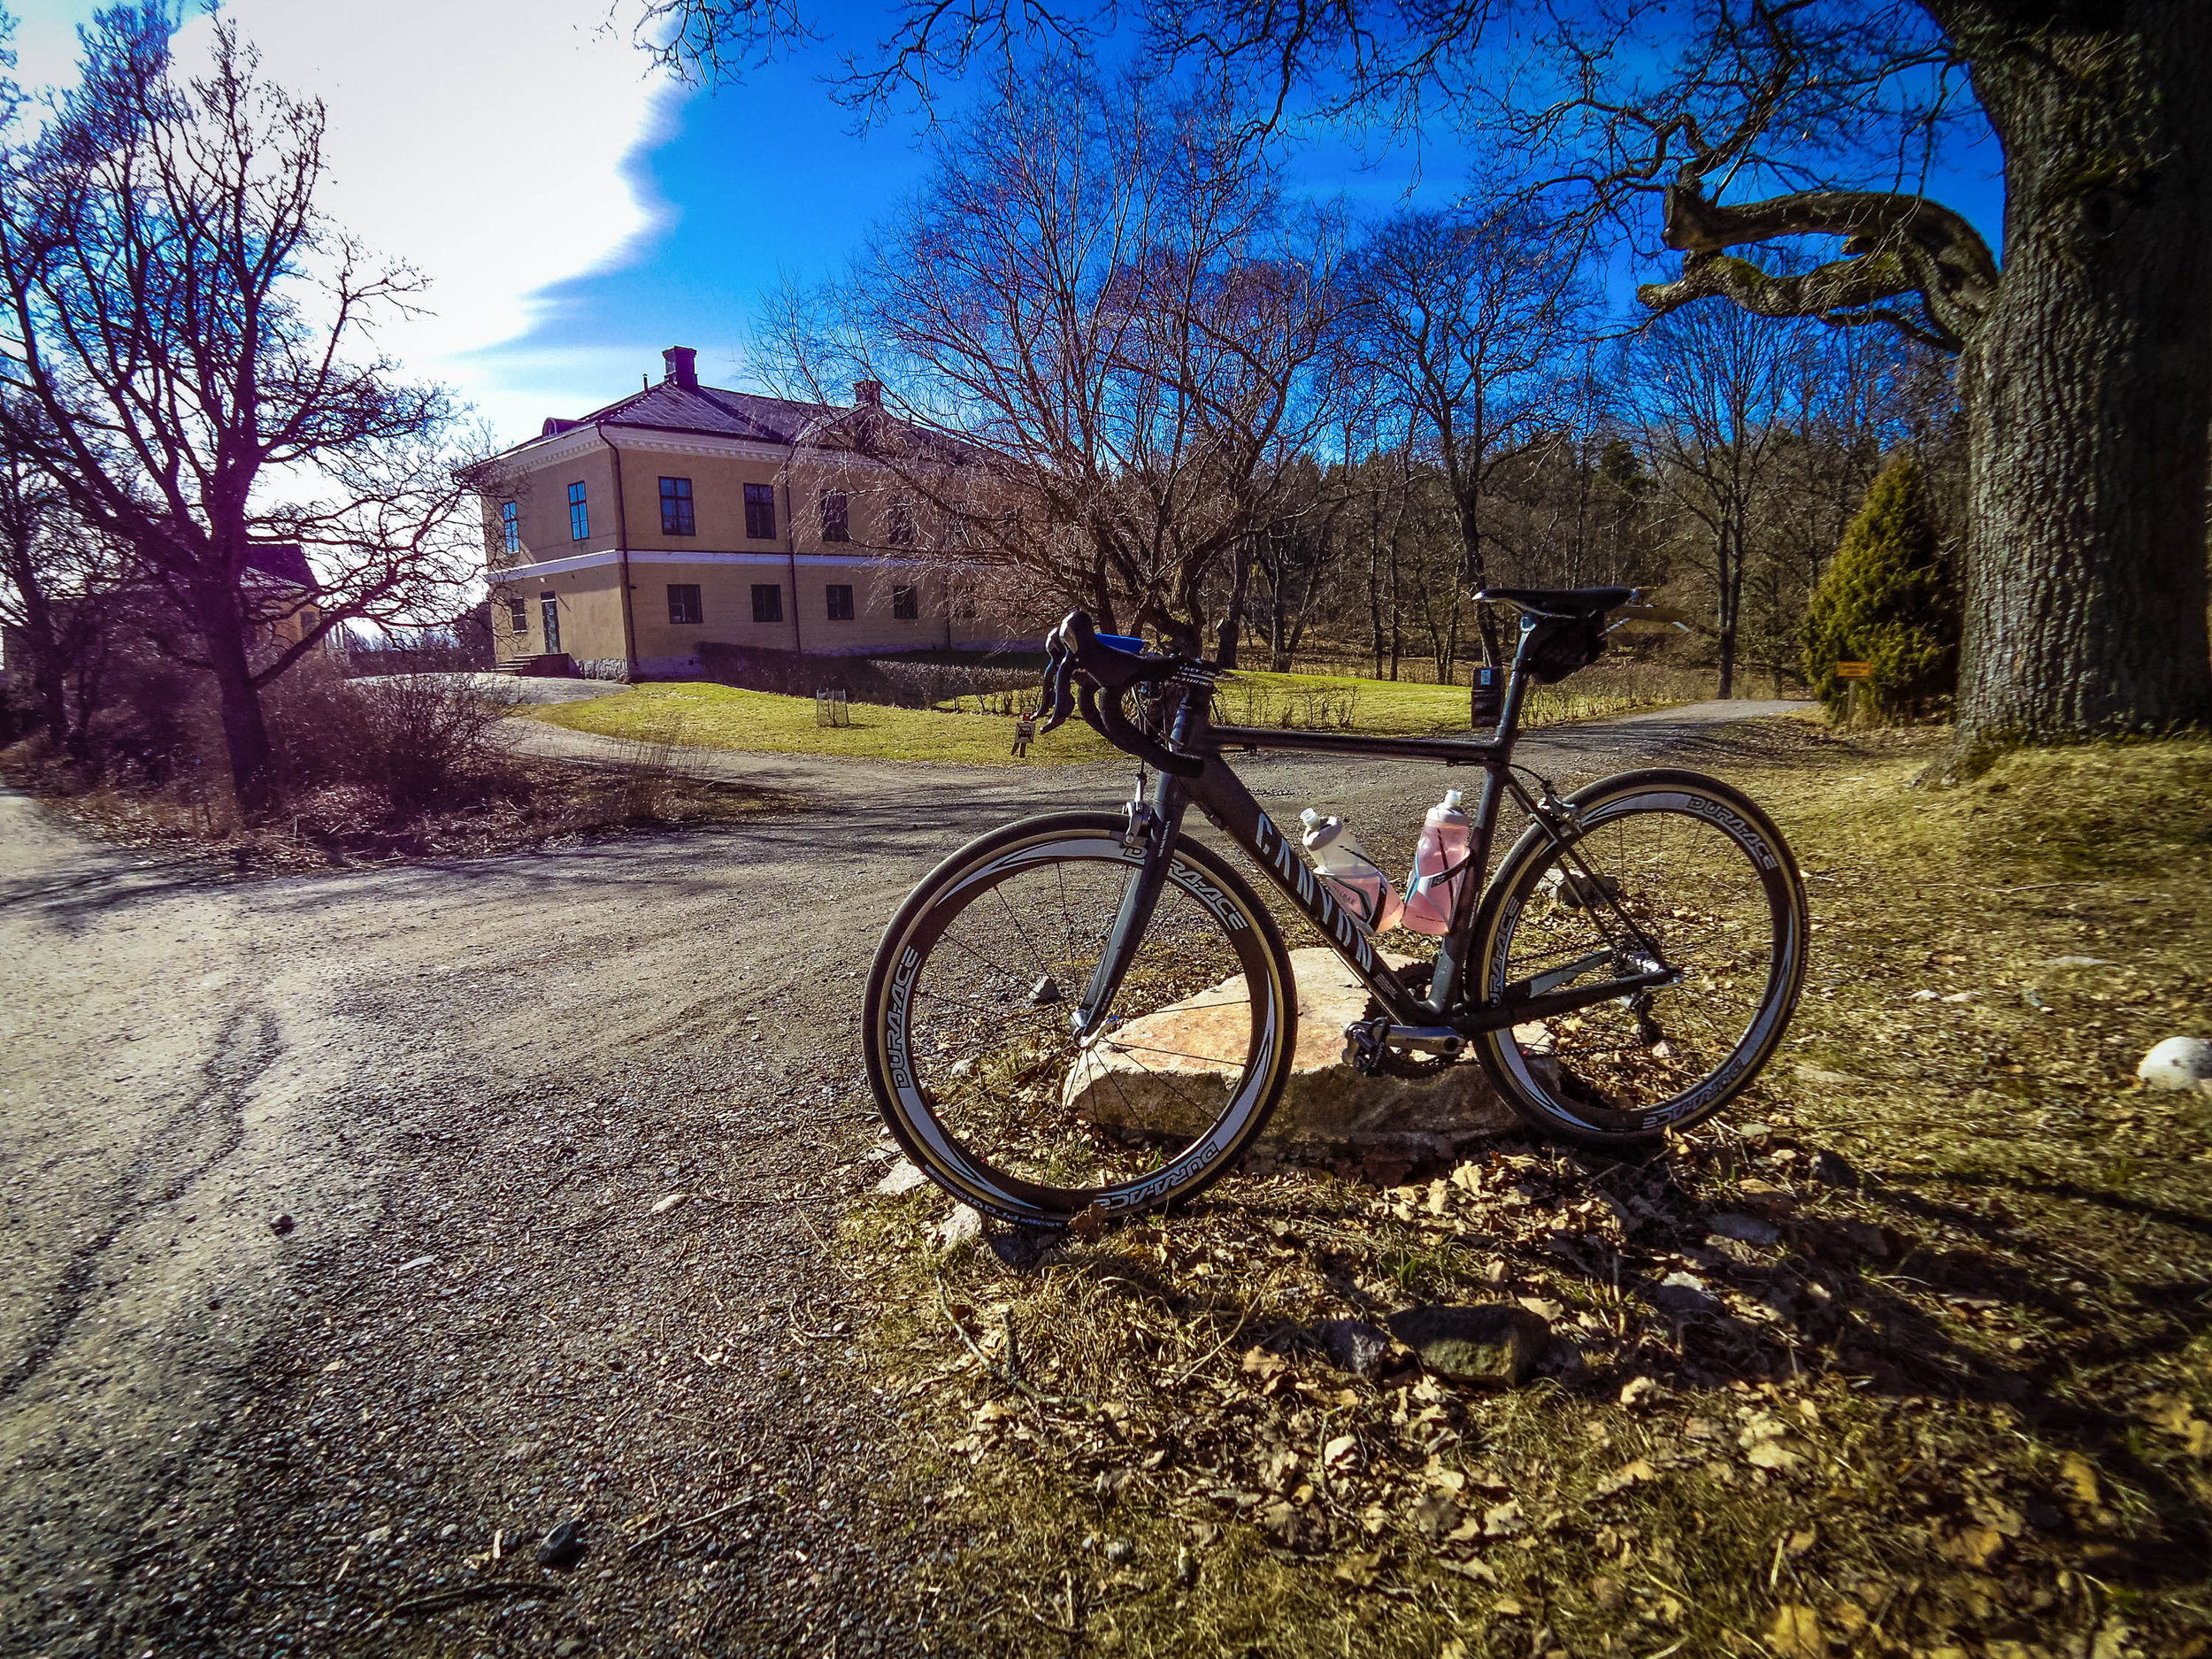 First long ride of the year, including a visit to Hovimäki